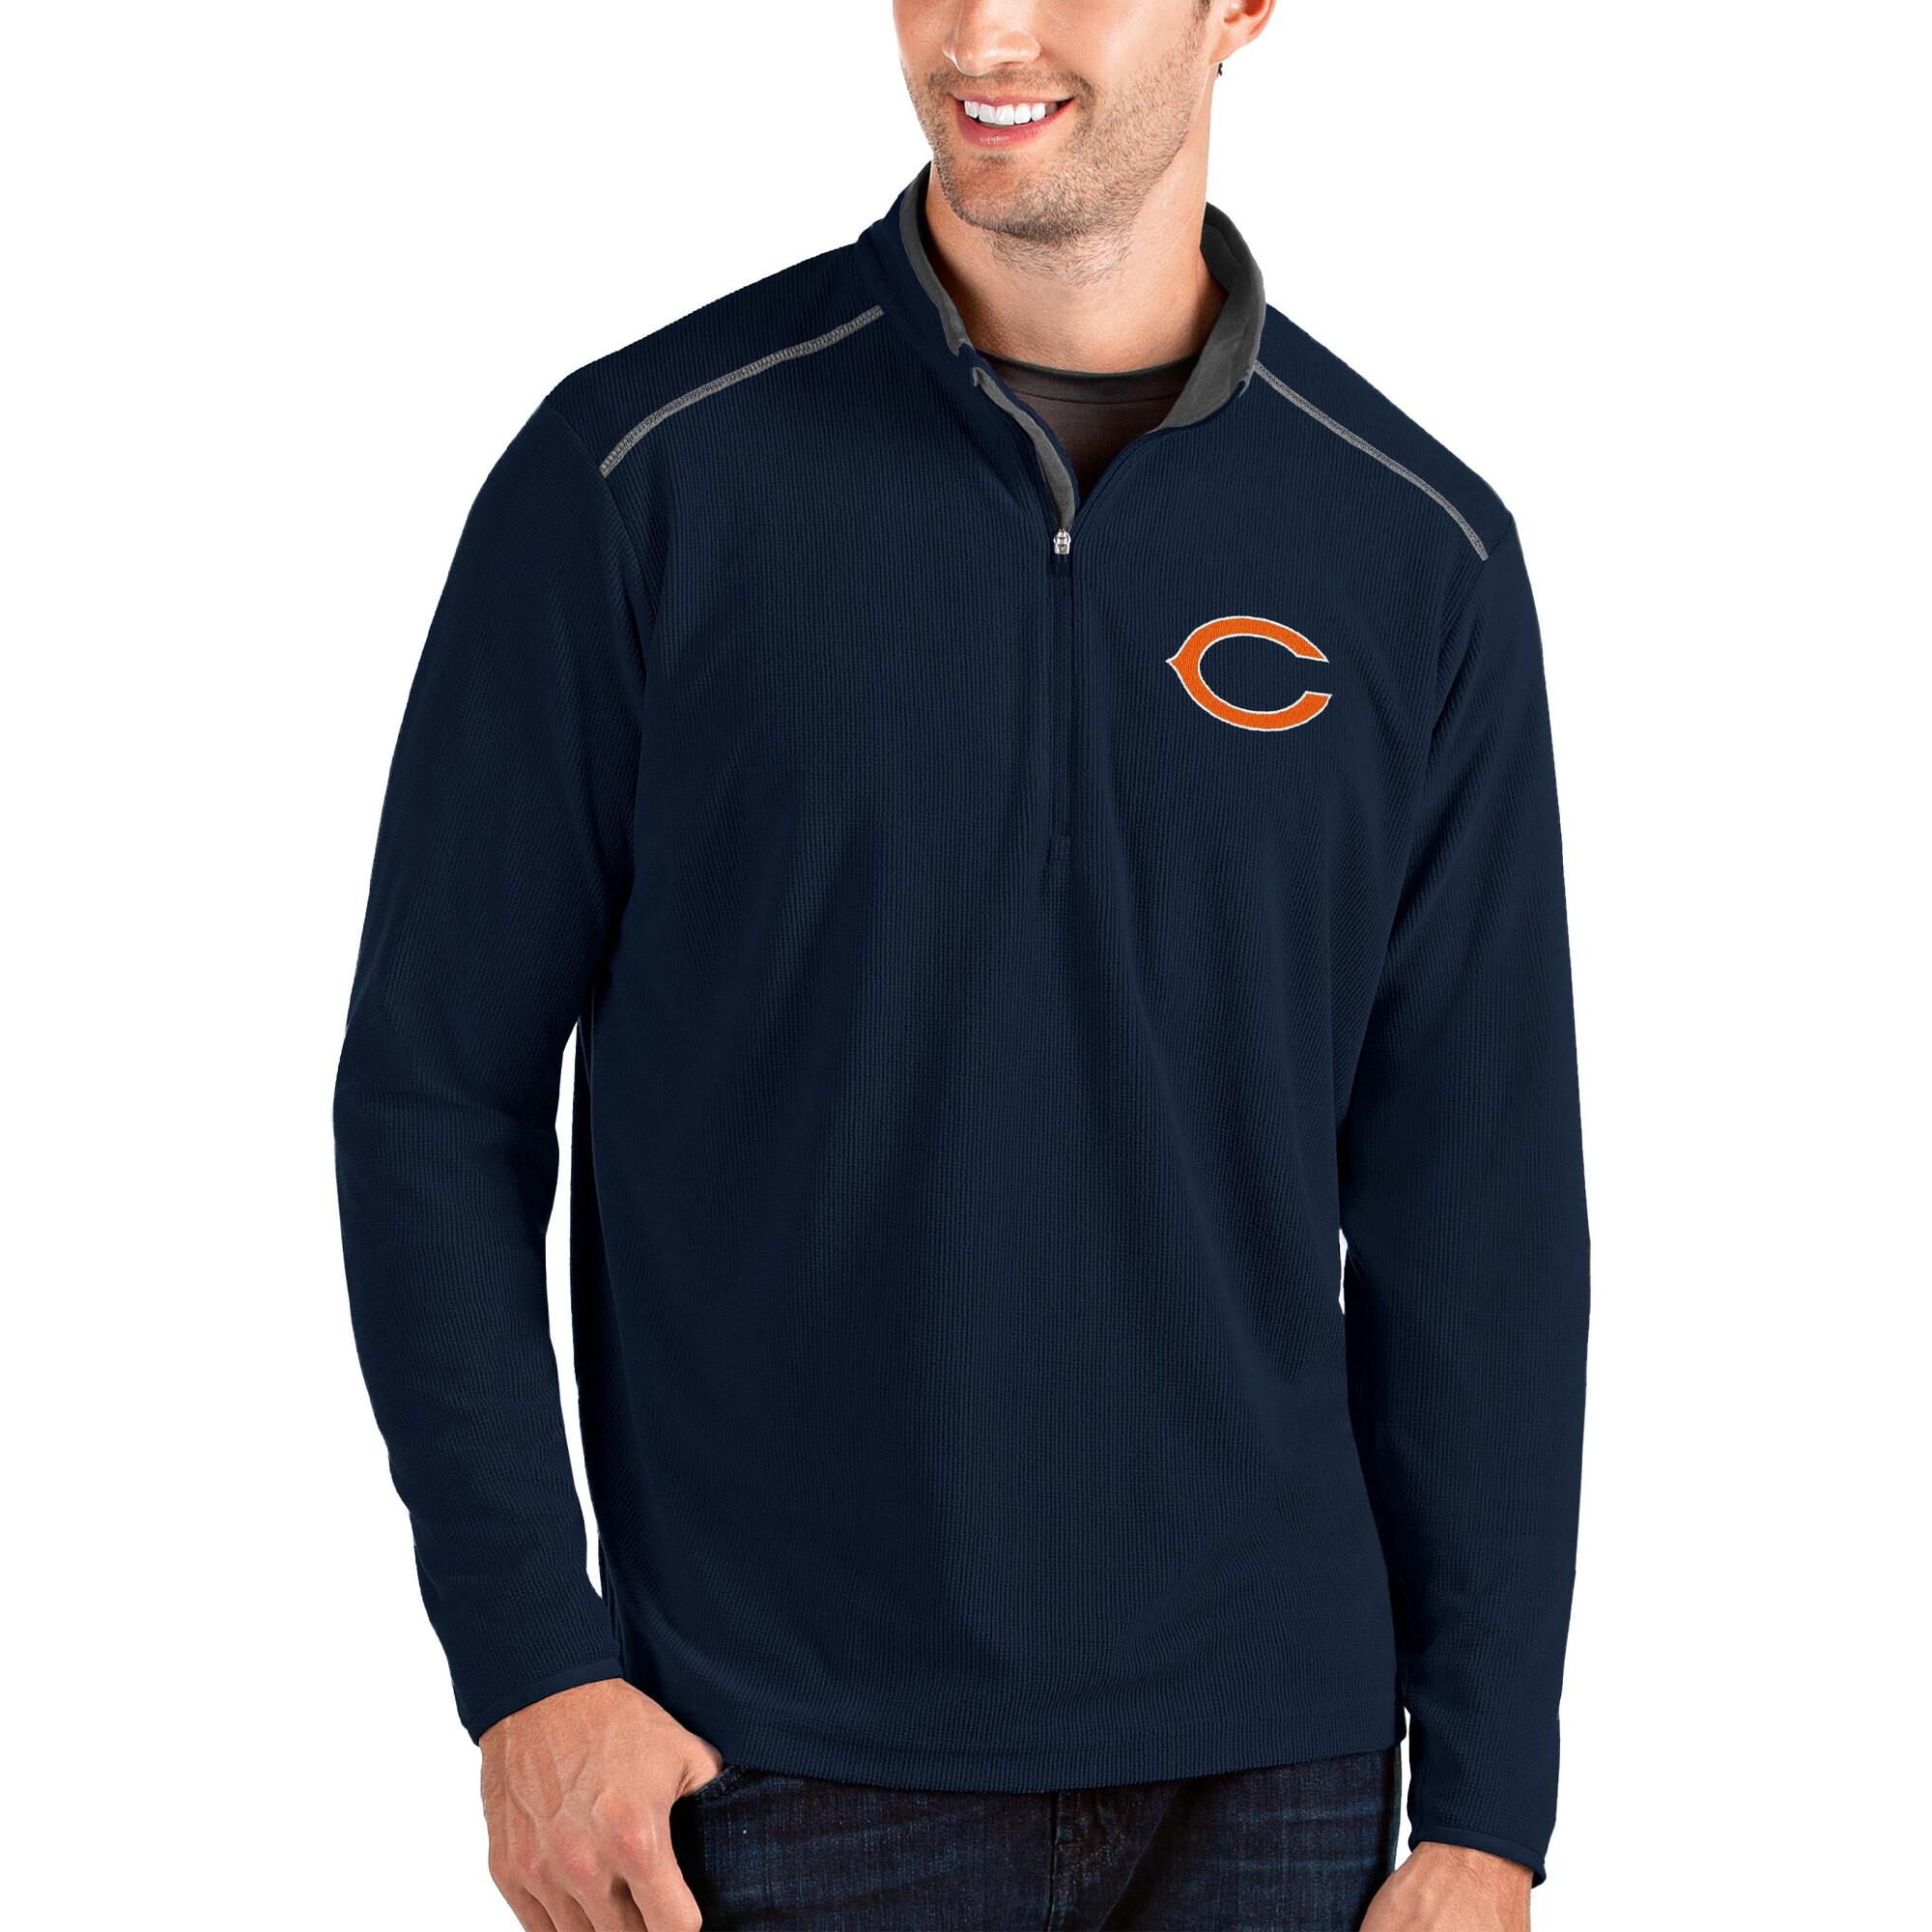 Chicago Bears Antigua Glacier Quarter-Zip Pullover Jacket - Navy/Gray